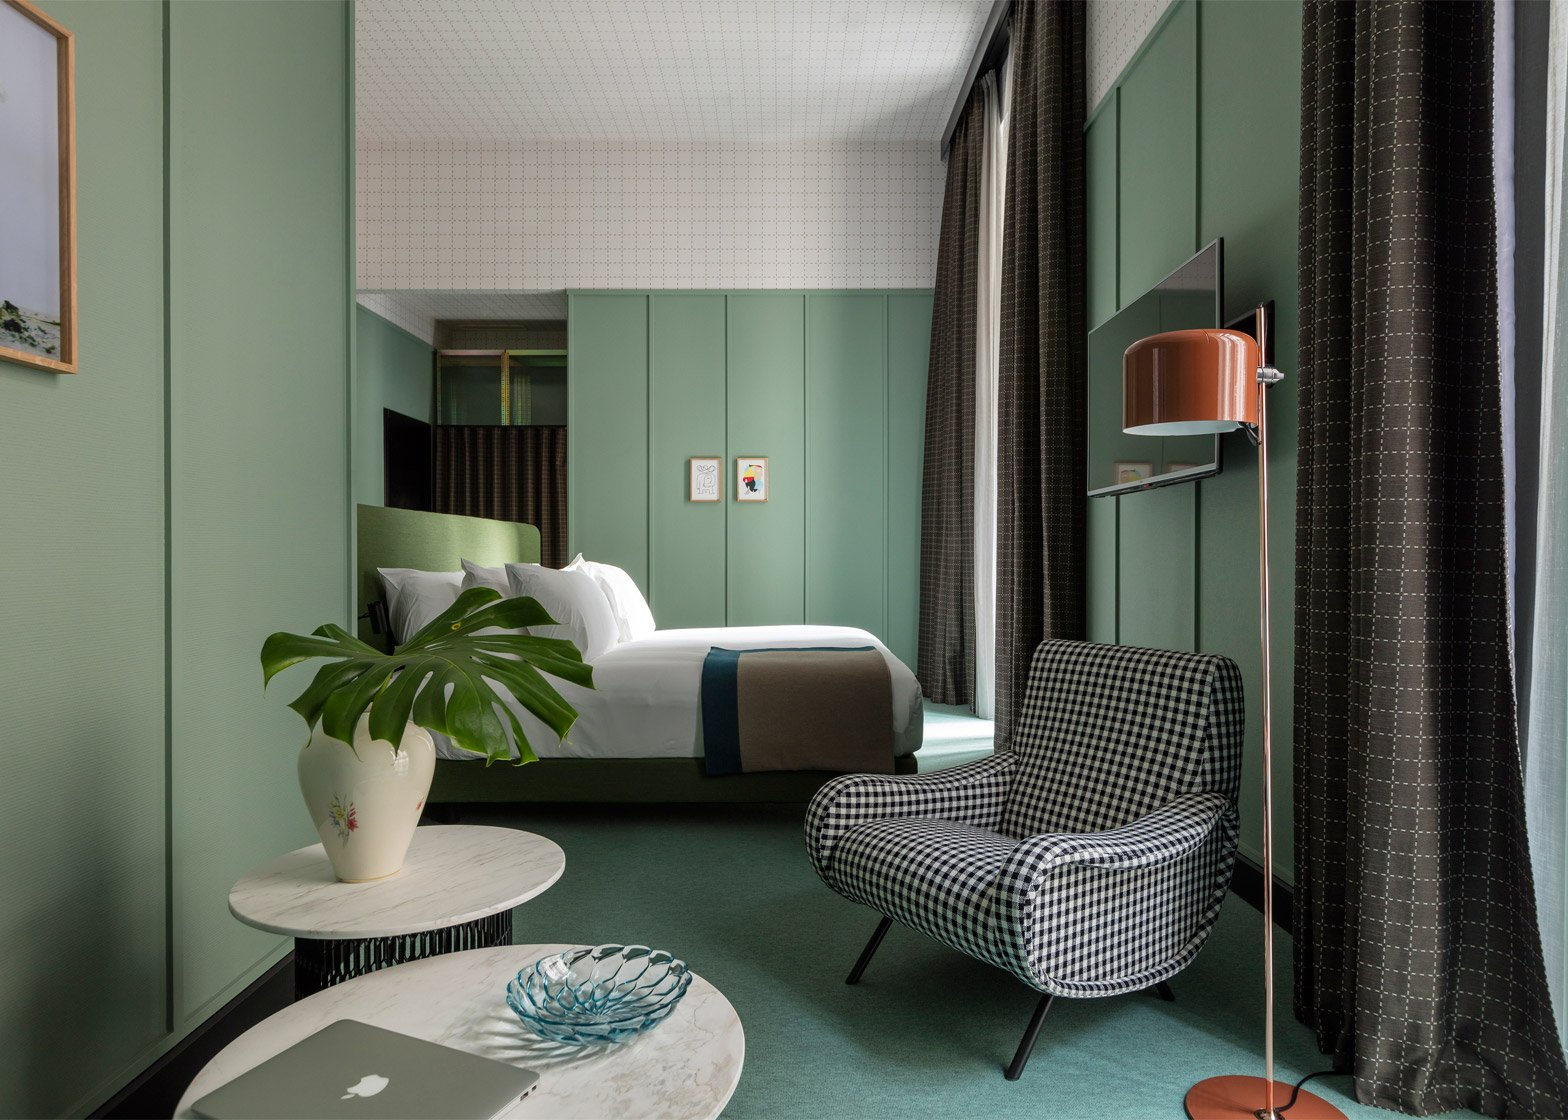 Patricia Urquiola designs Milan outpost for Room Mate Hotels chain